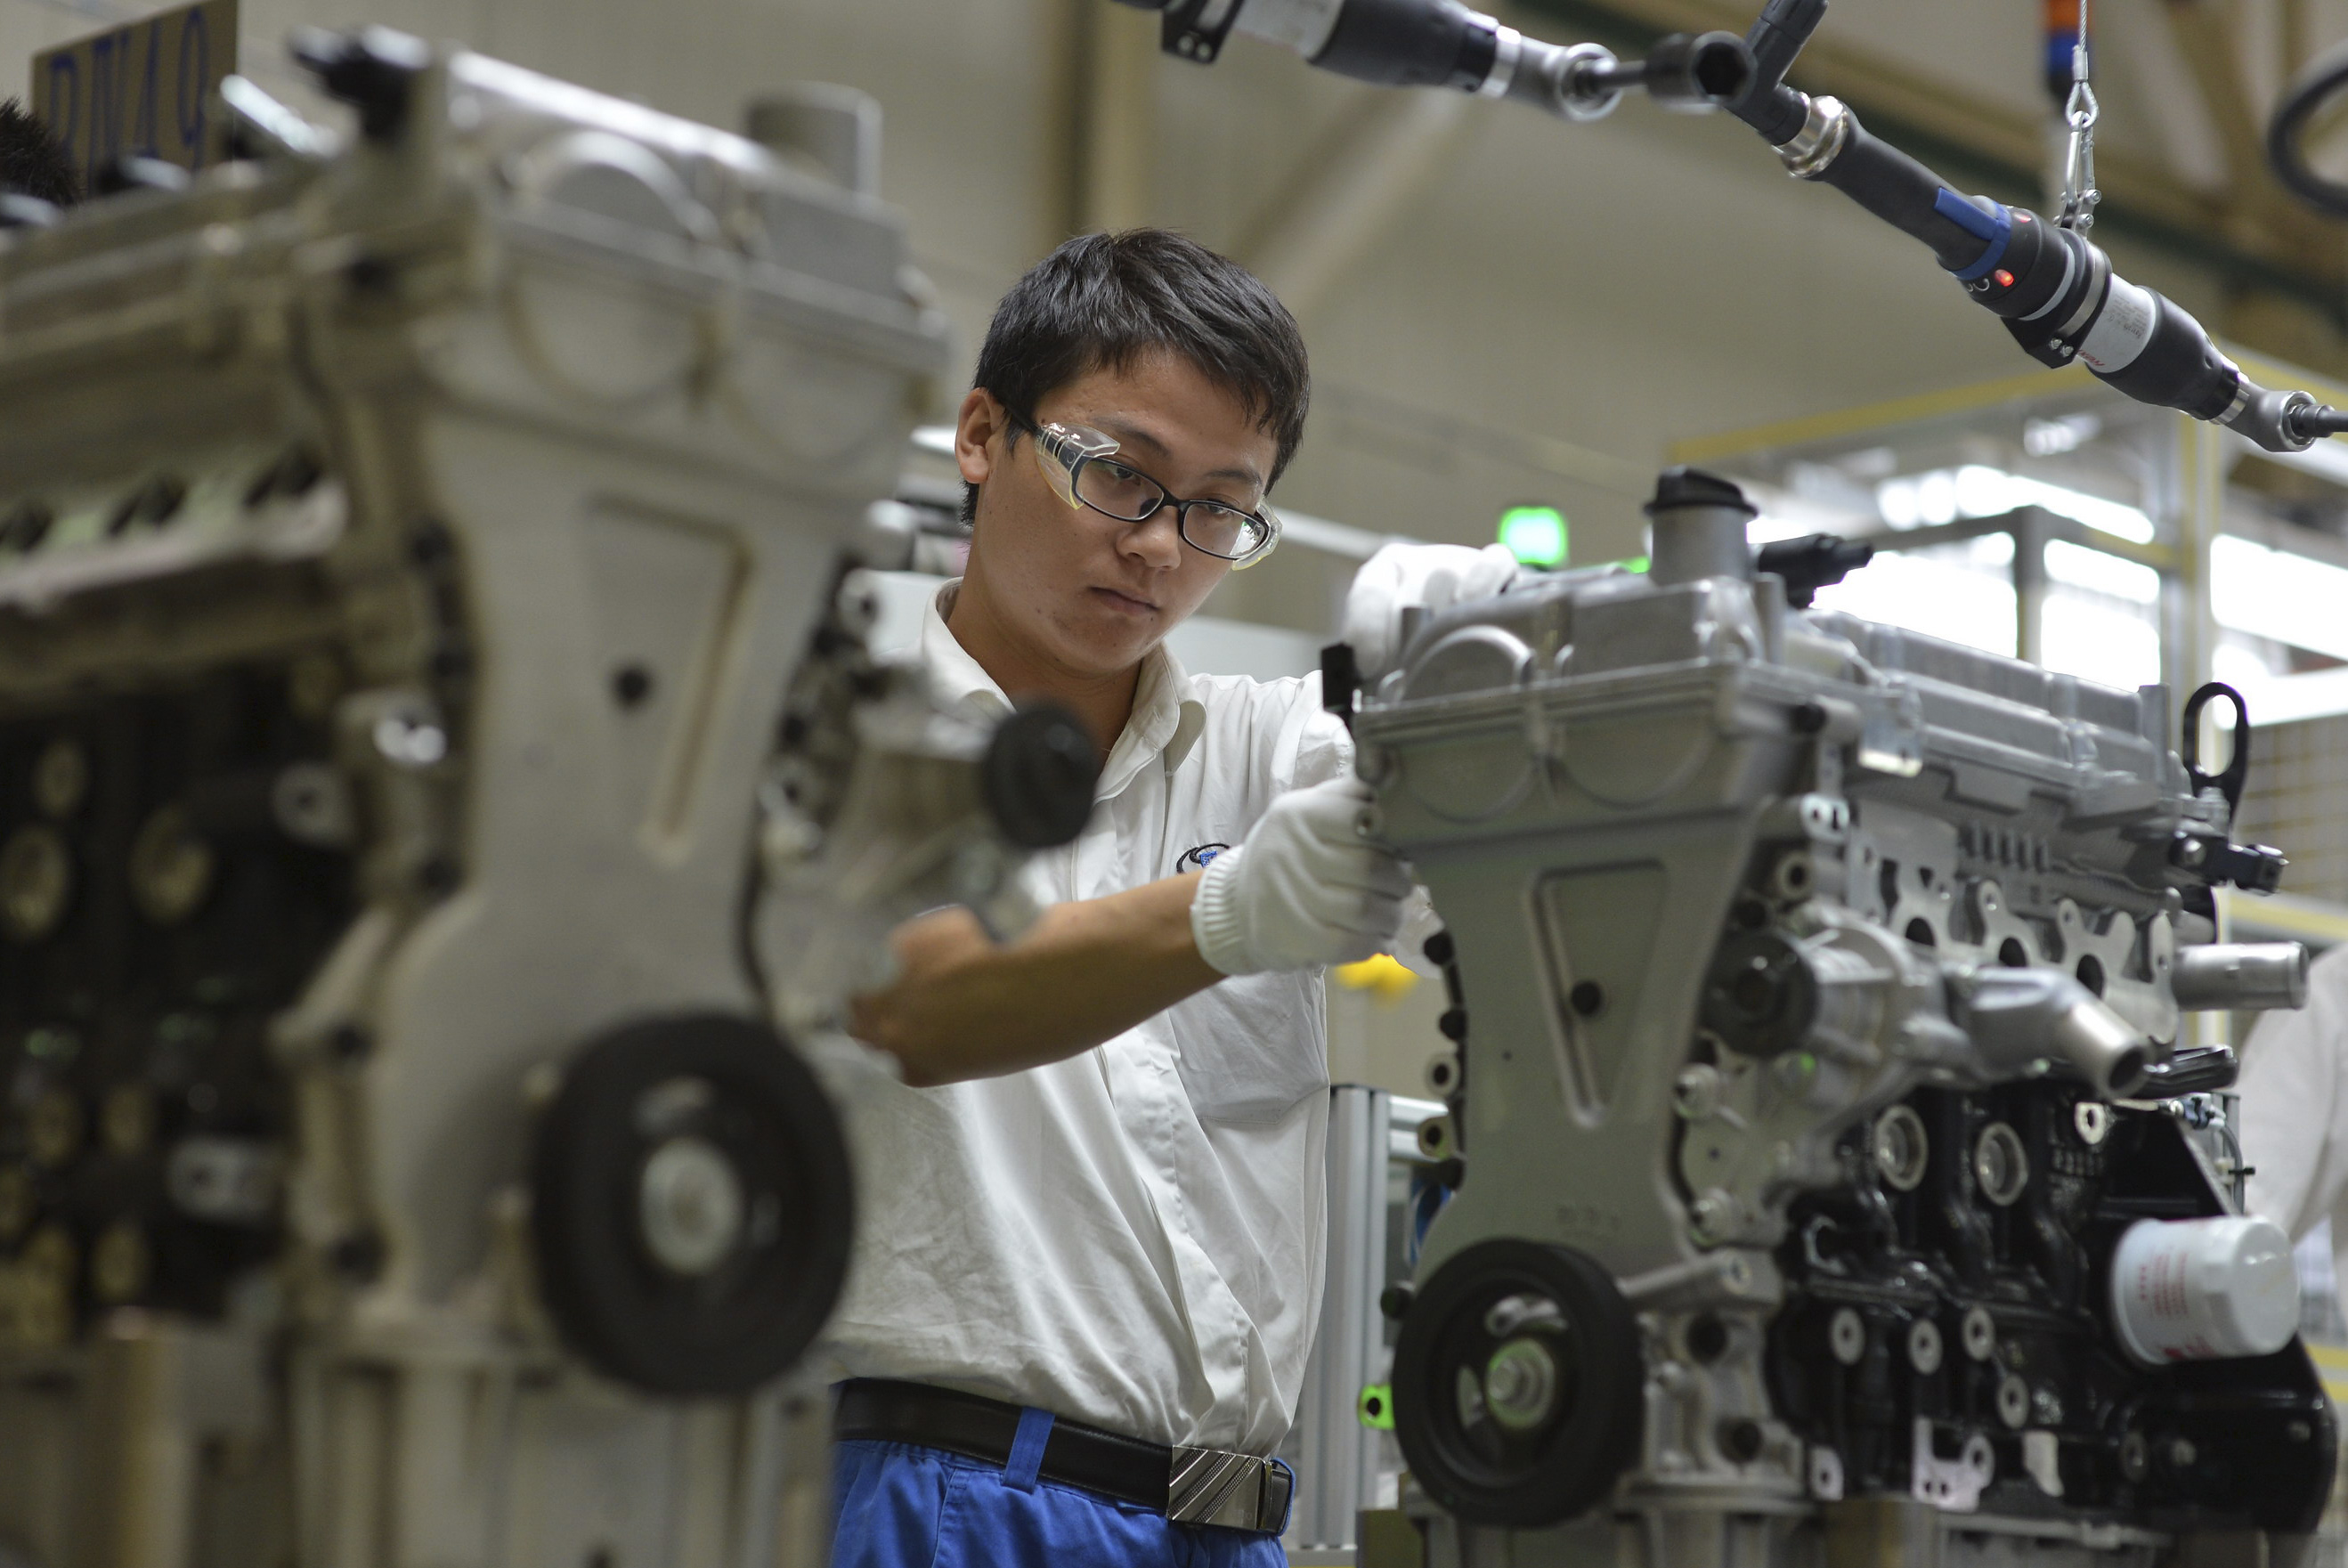 In this Tuesday, Sept. 23, 2014 photo, a worker assembles engines at the General Motors engine plant in Wuhan in central China's Hubei province. General Motors Co. expects its sales in China this year to top 3.1 million units and sees no impact on business from an anti-monopoly probe of the industry, the automaker's China unit President Matt Tsien said Wednesday, Sept. 24, 2014. (AP Photo) CHINA OUT